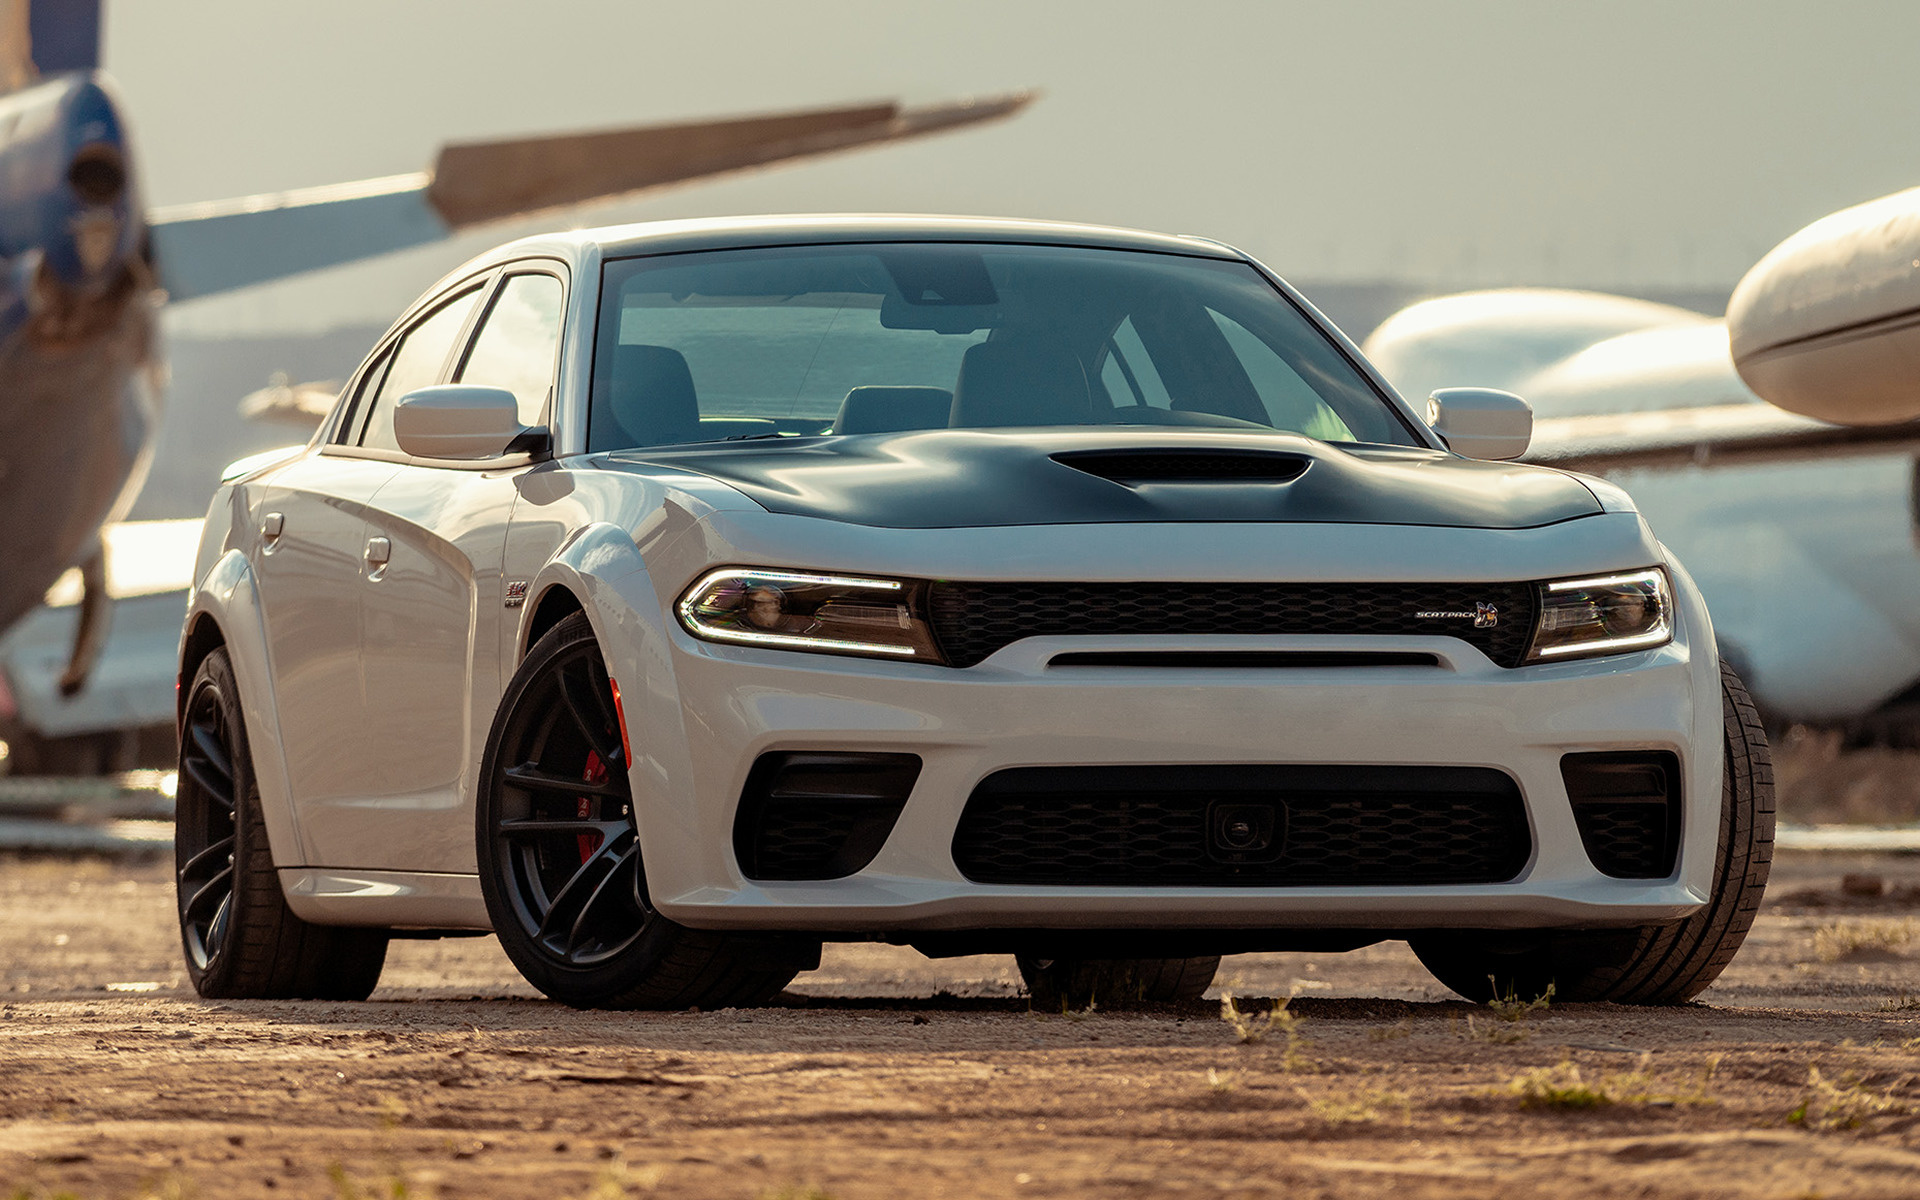 2017 Dodge Ram >> 2020 Dodge Charger Scat Pack Widebody - Wallpapers and HD Images | Car Pixel